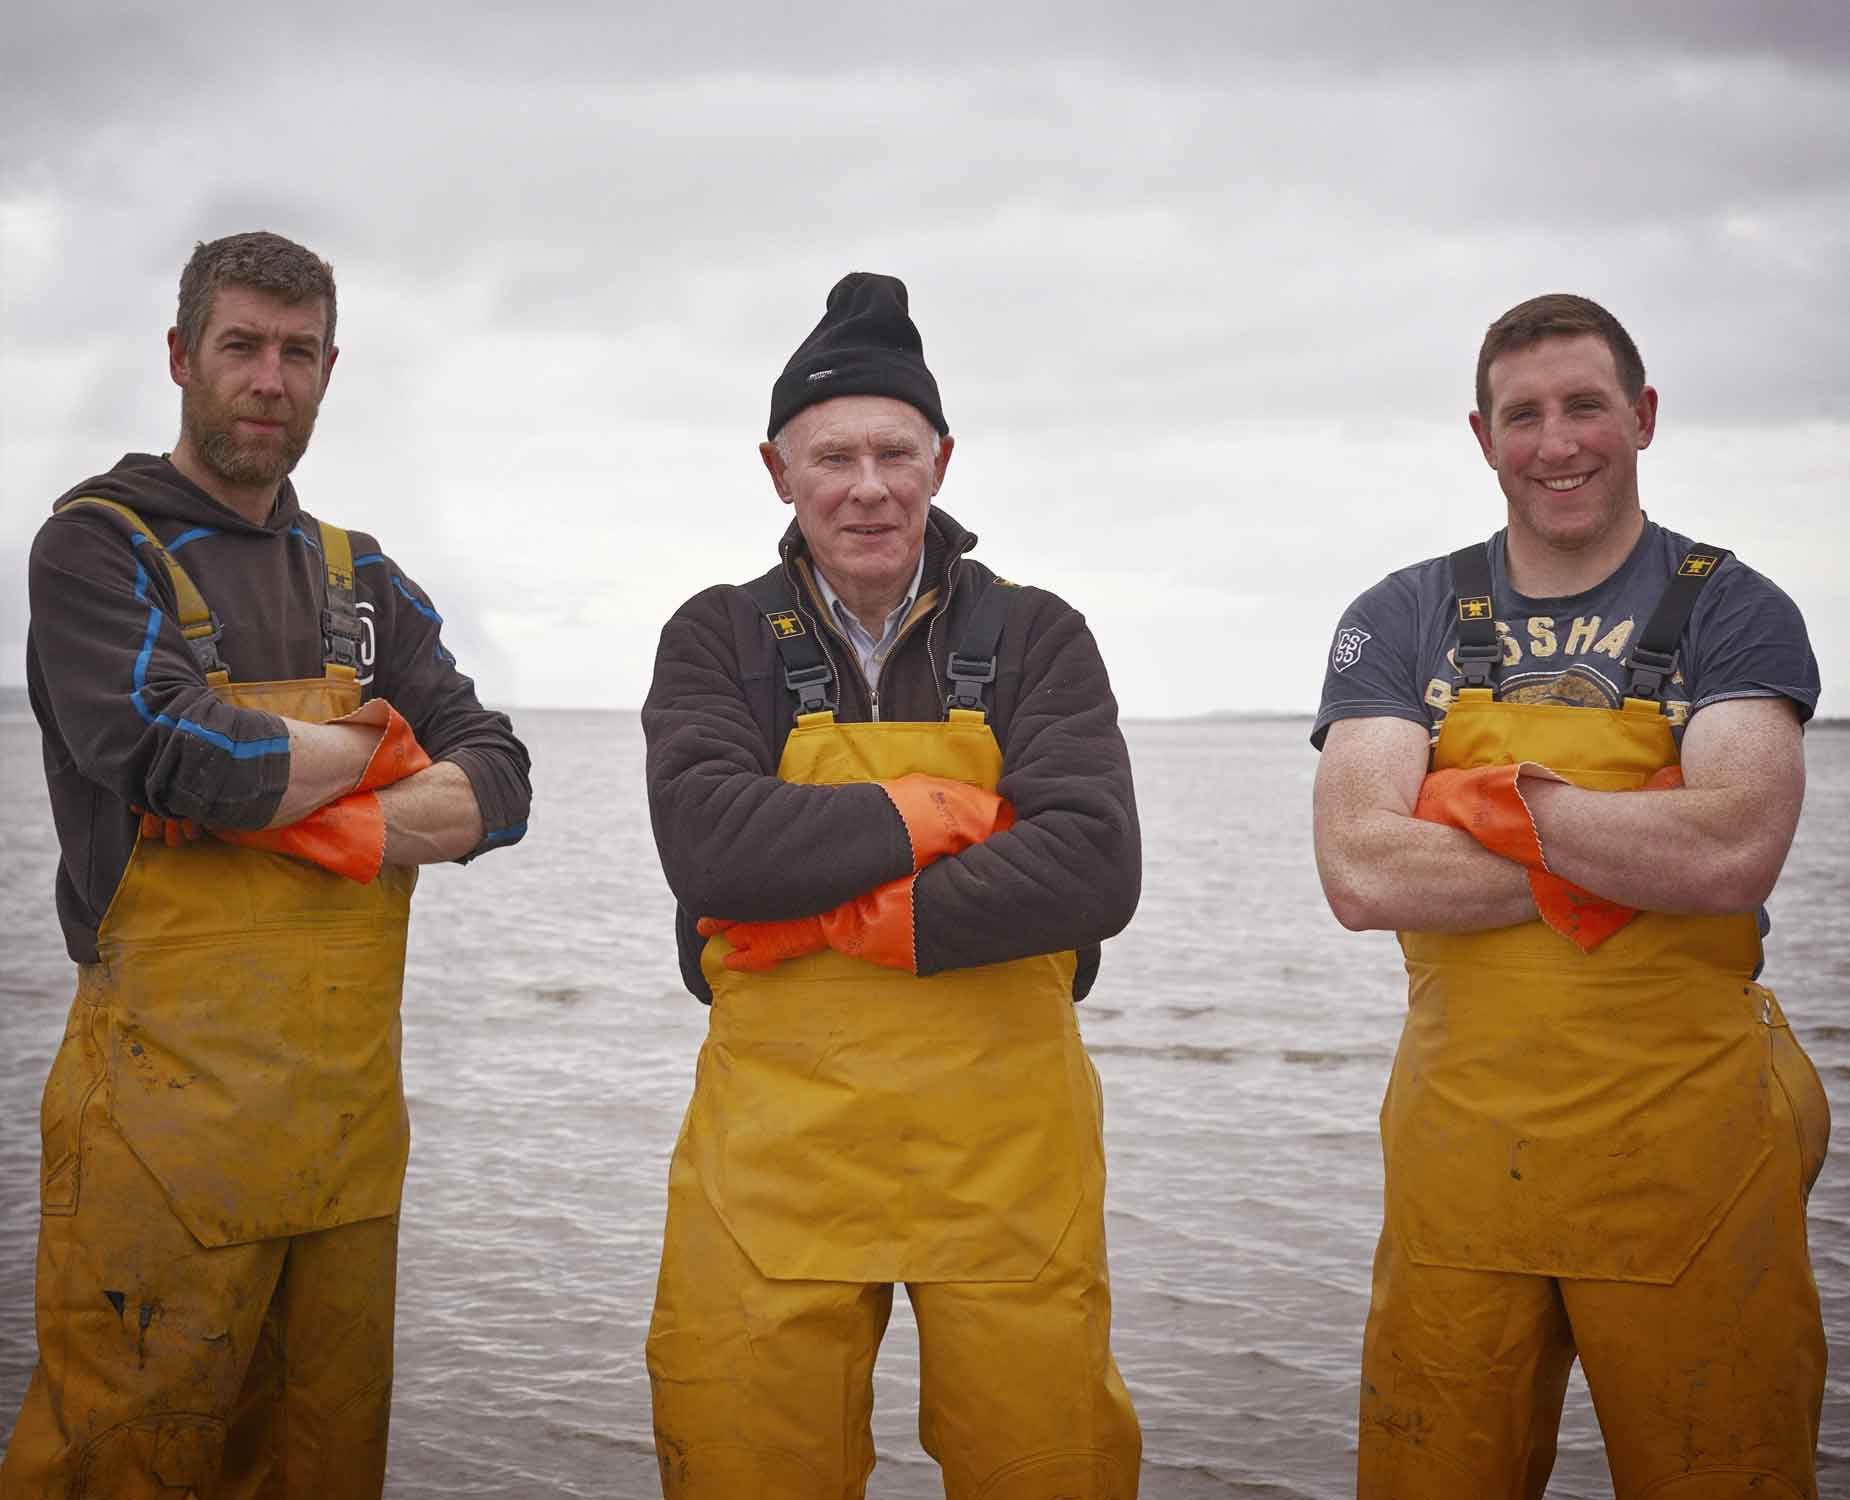 From left to right: Bernard, Michael, and Thomas. Source: www.moyastaoysters.com